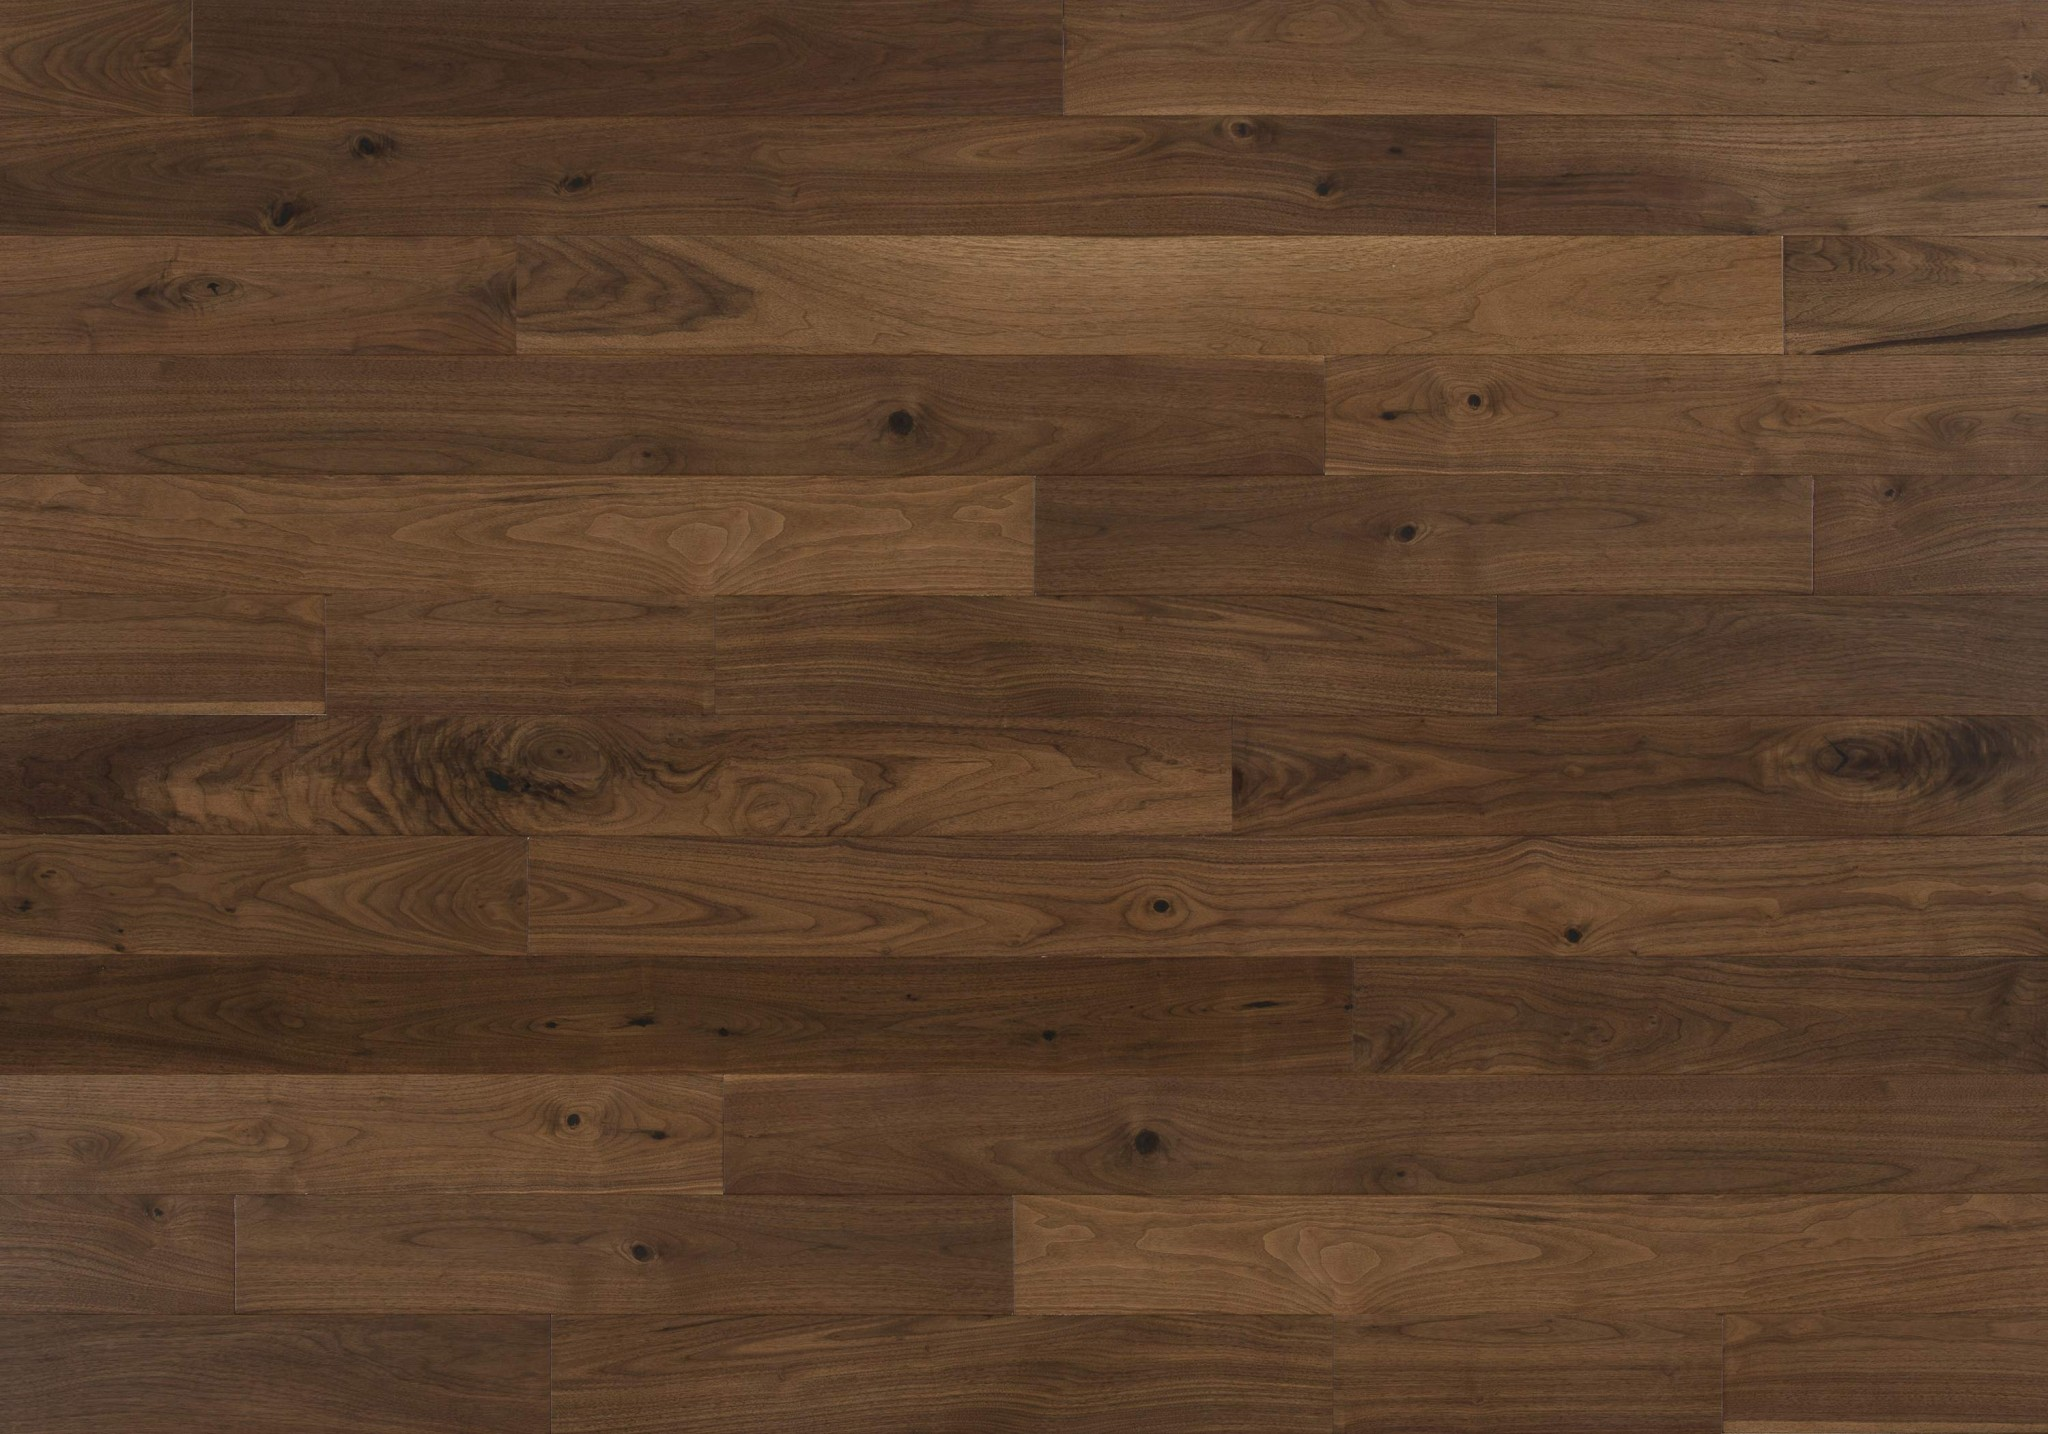 black walnut hardwood flooring brown country side homestead designer lauzon JEVKYLM